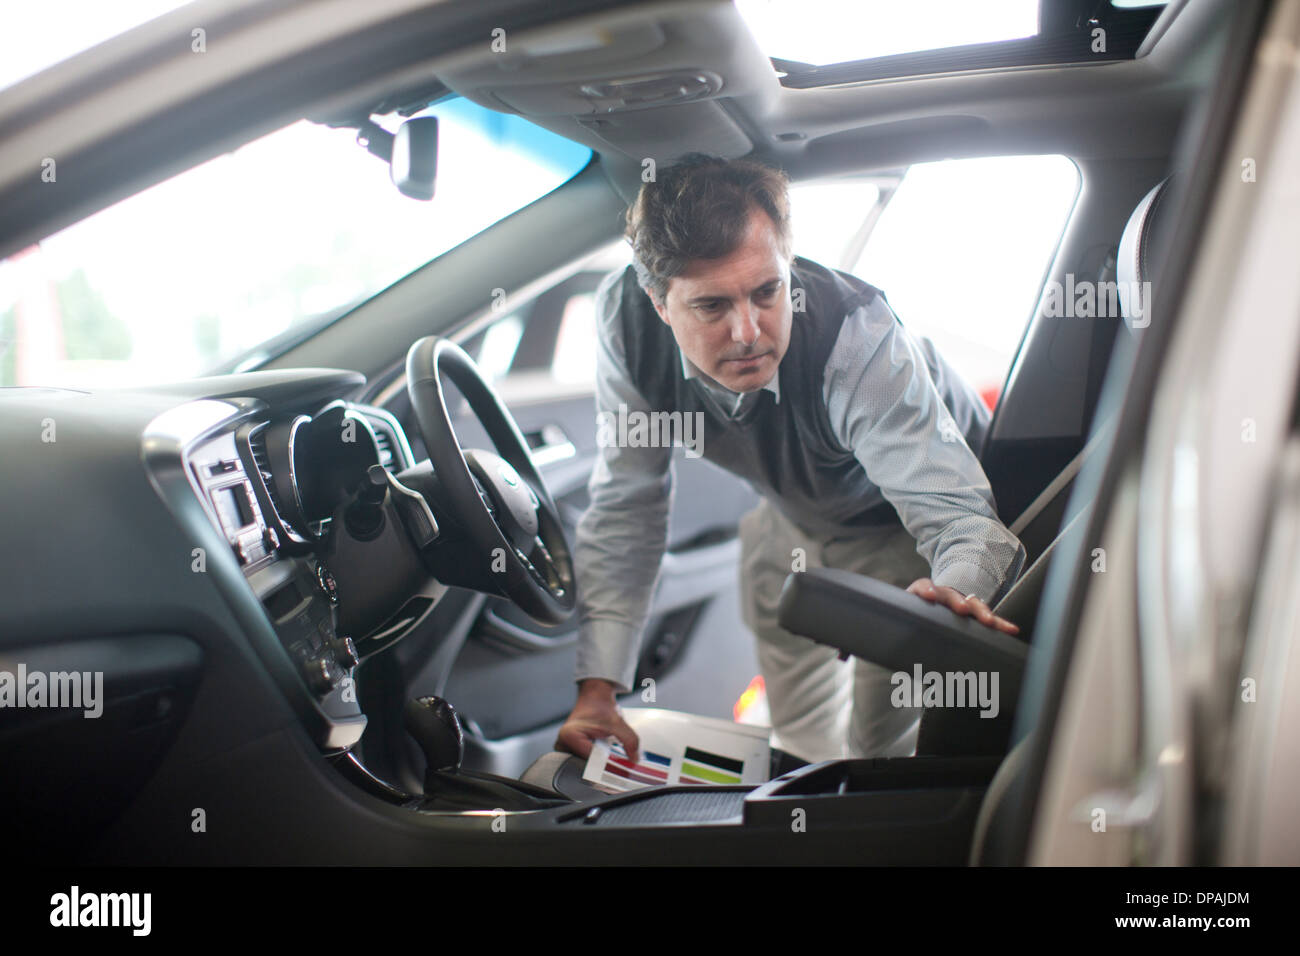 Mid adult man checking arm rest in car showroom - Stock Image